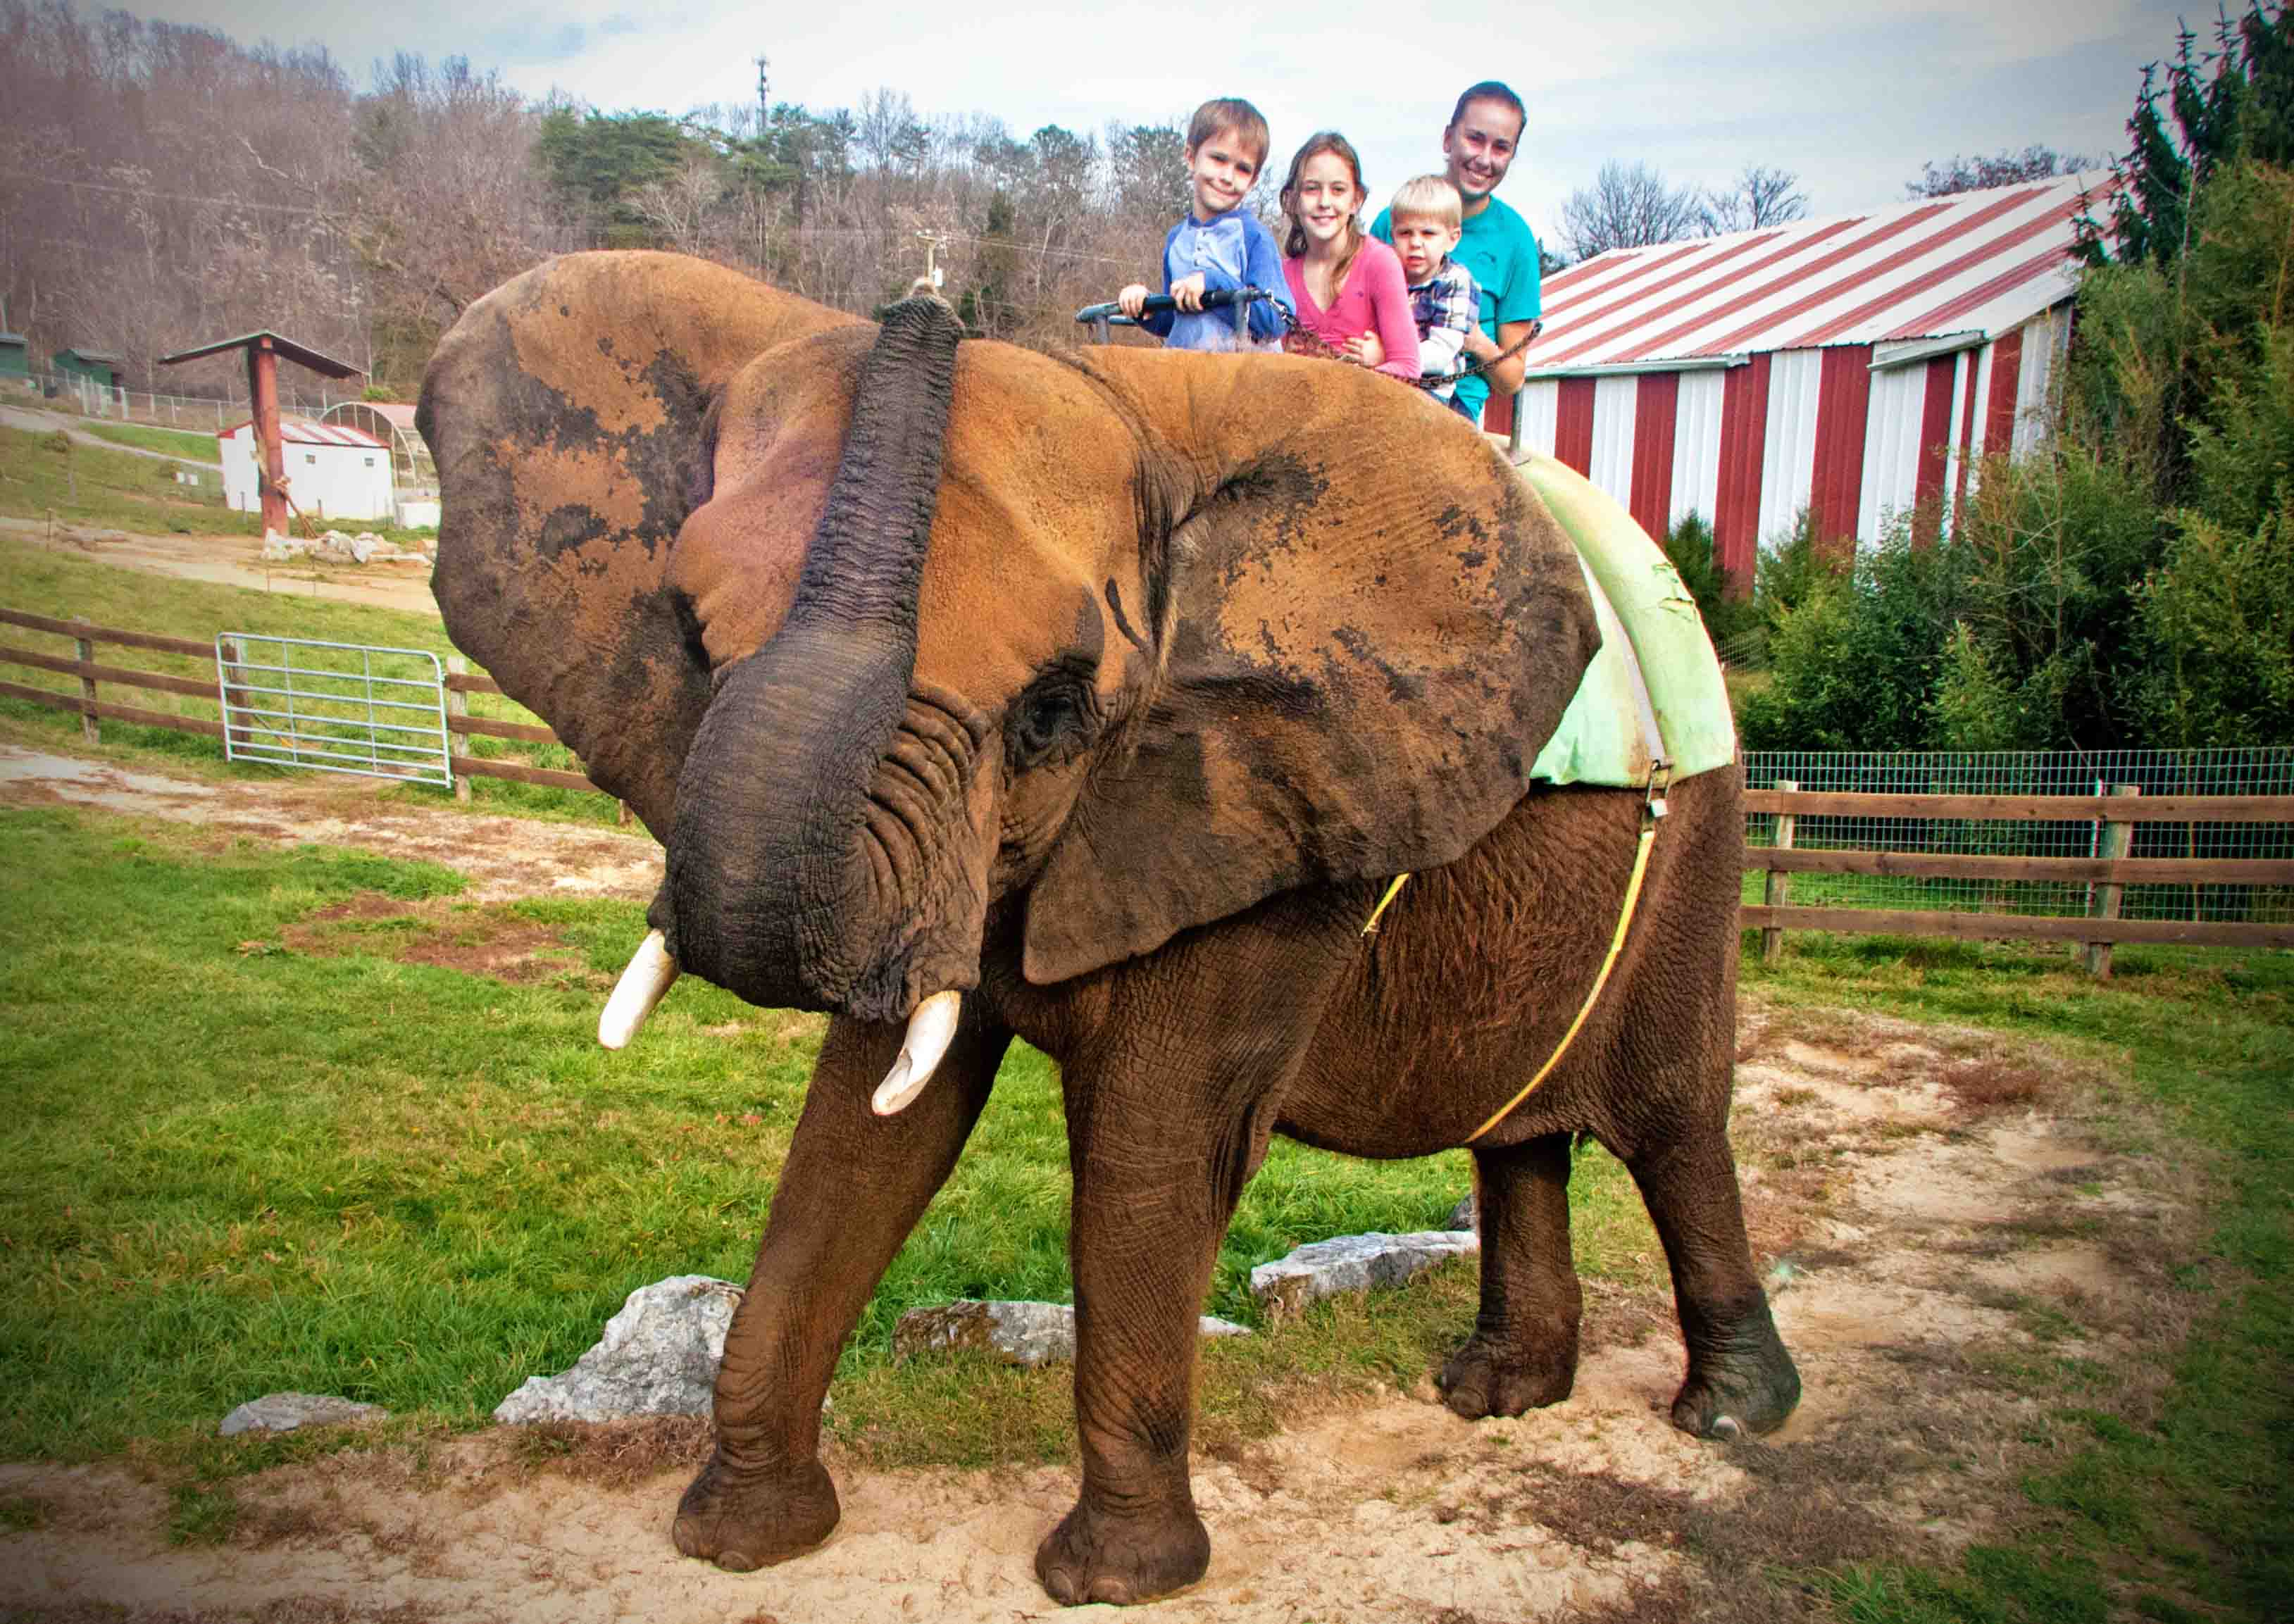 African Elephant Rides  African Elephan...